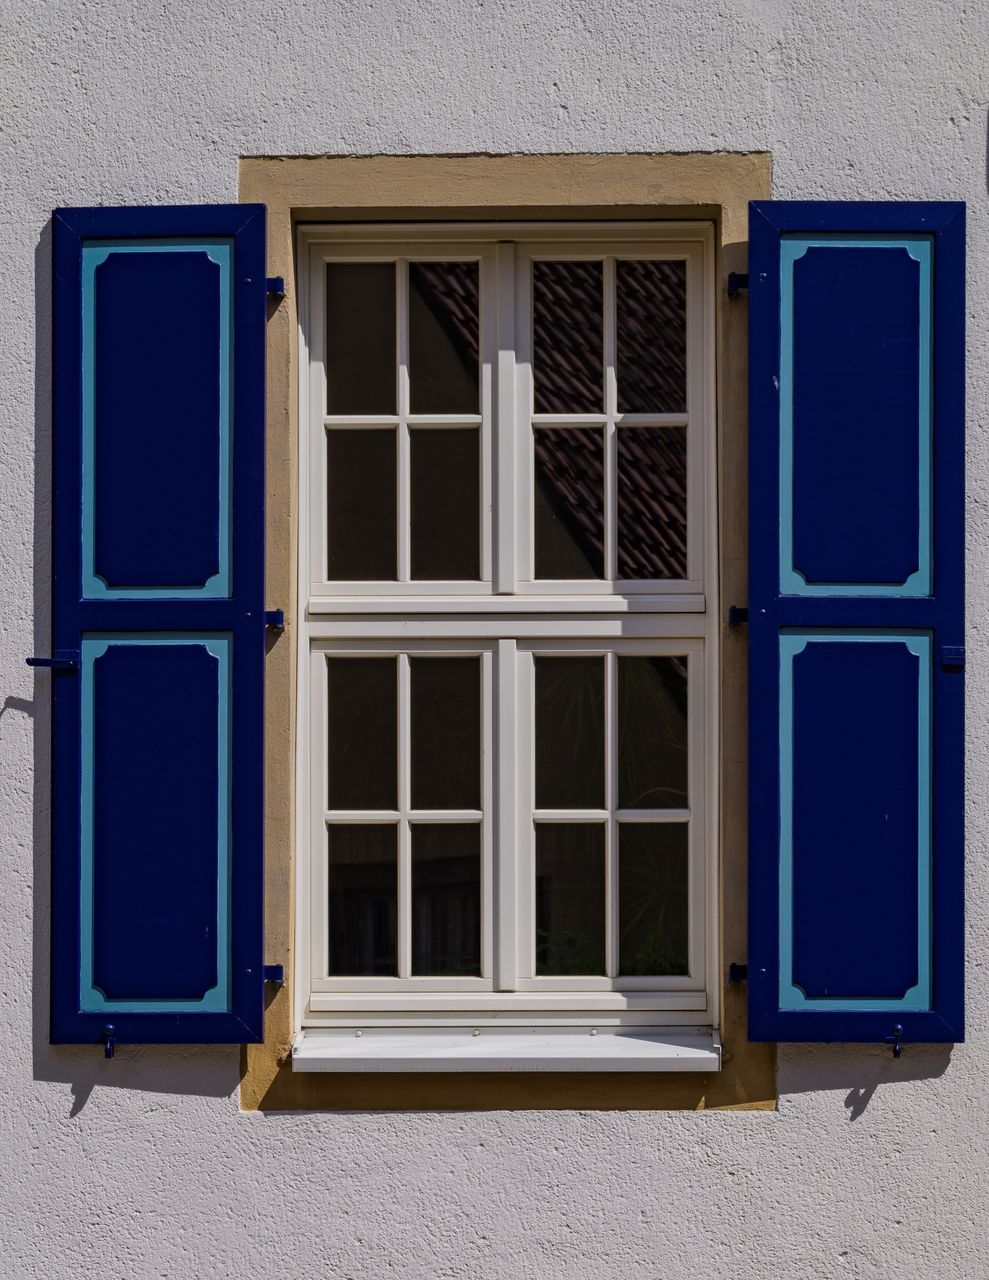 window, built structure, architecture, building exterior, building, no people, glass - material, house, day, blue, closed, wall - building feature, window frame, residential district, outdoors, open, geometric shape, shape, security, door